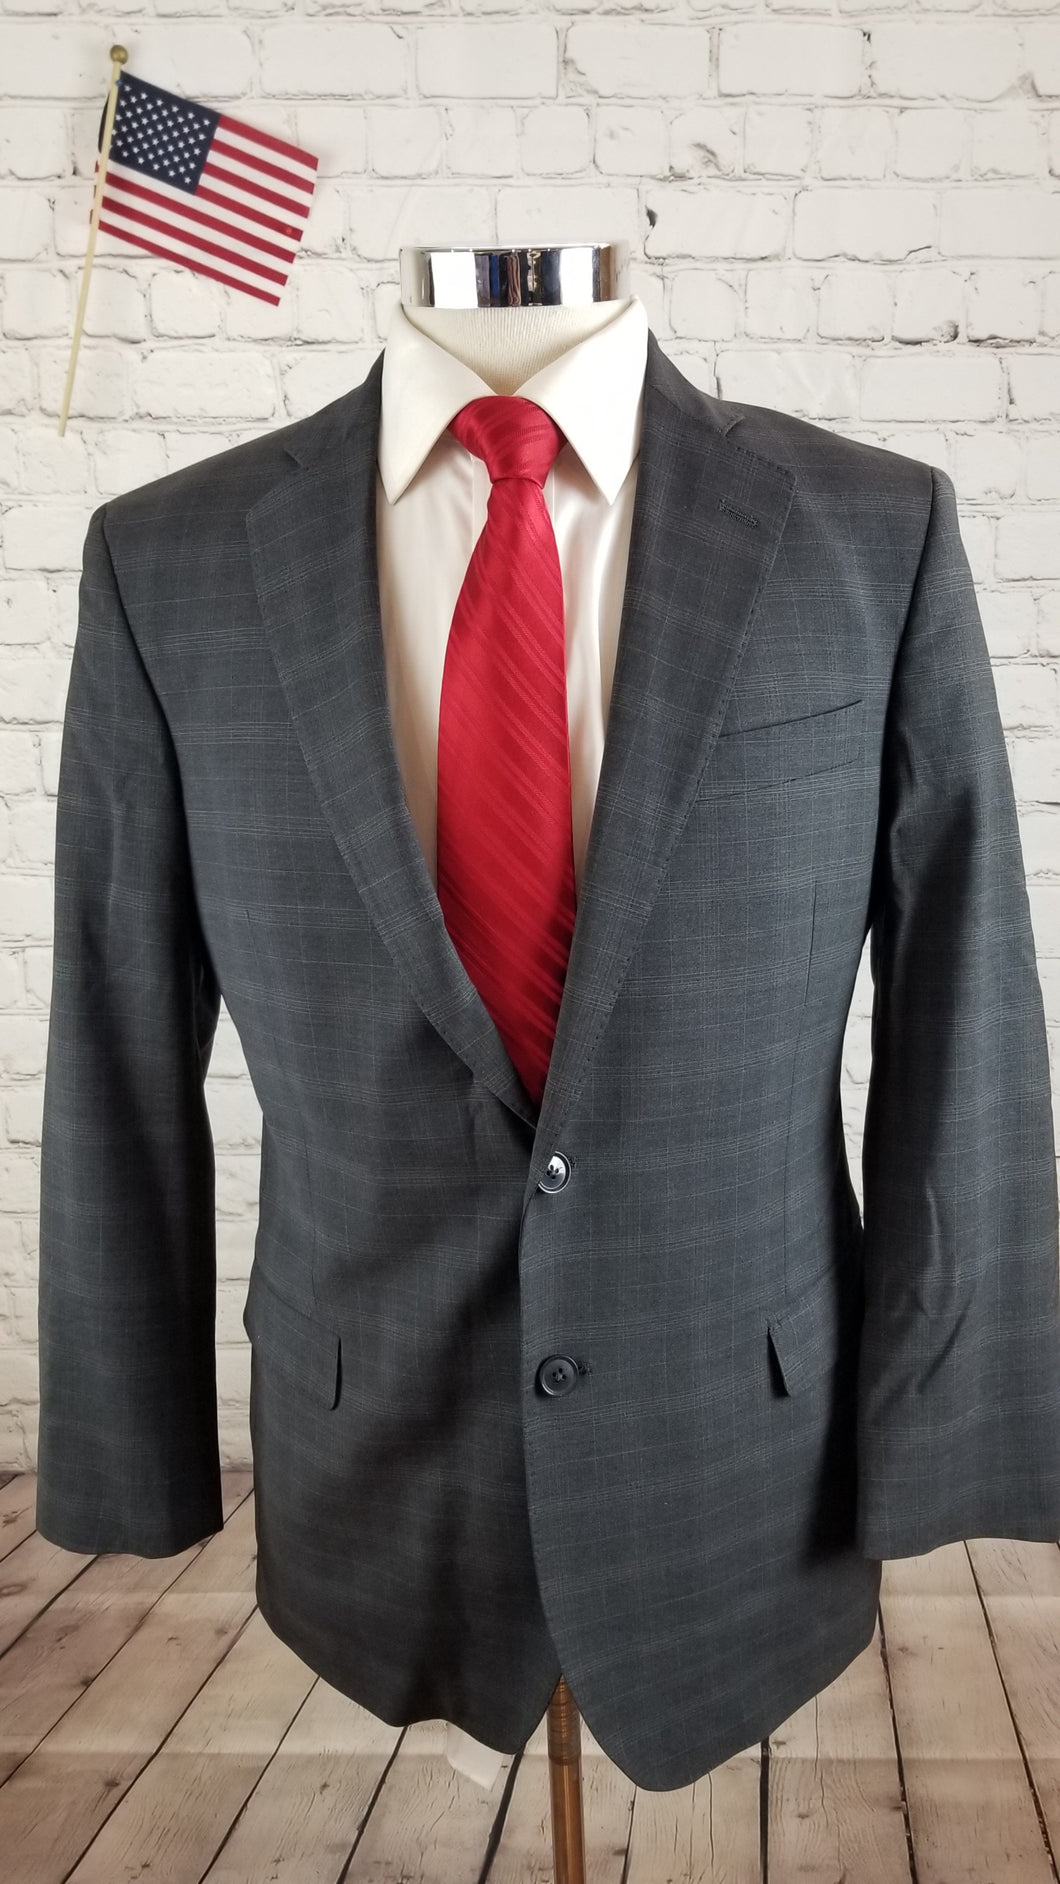 Brooks Brothers Men's Gray Plaid Wool Suit 40R Pants 34X27 $798